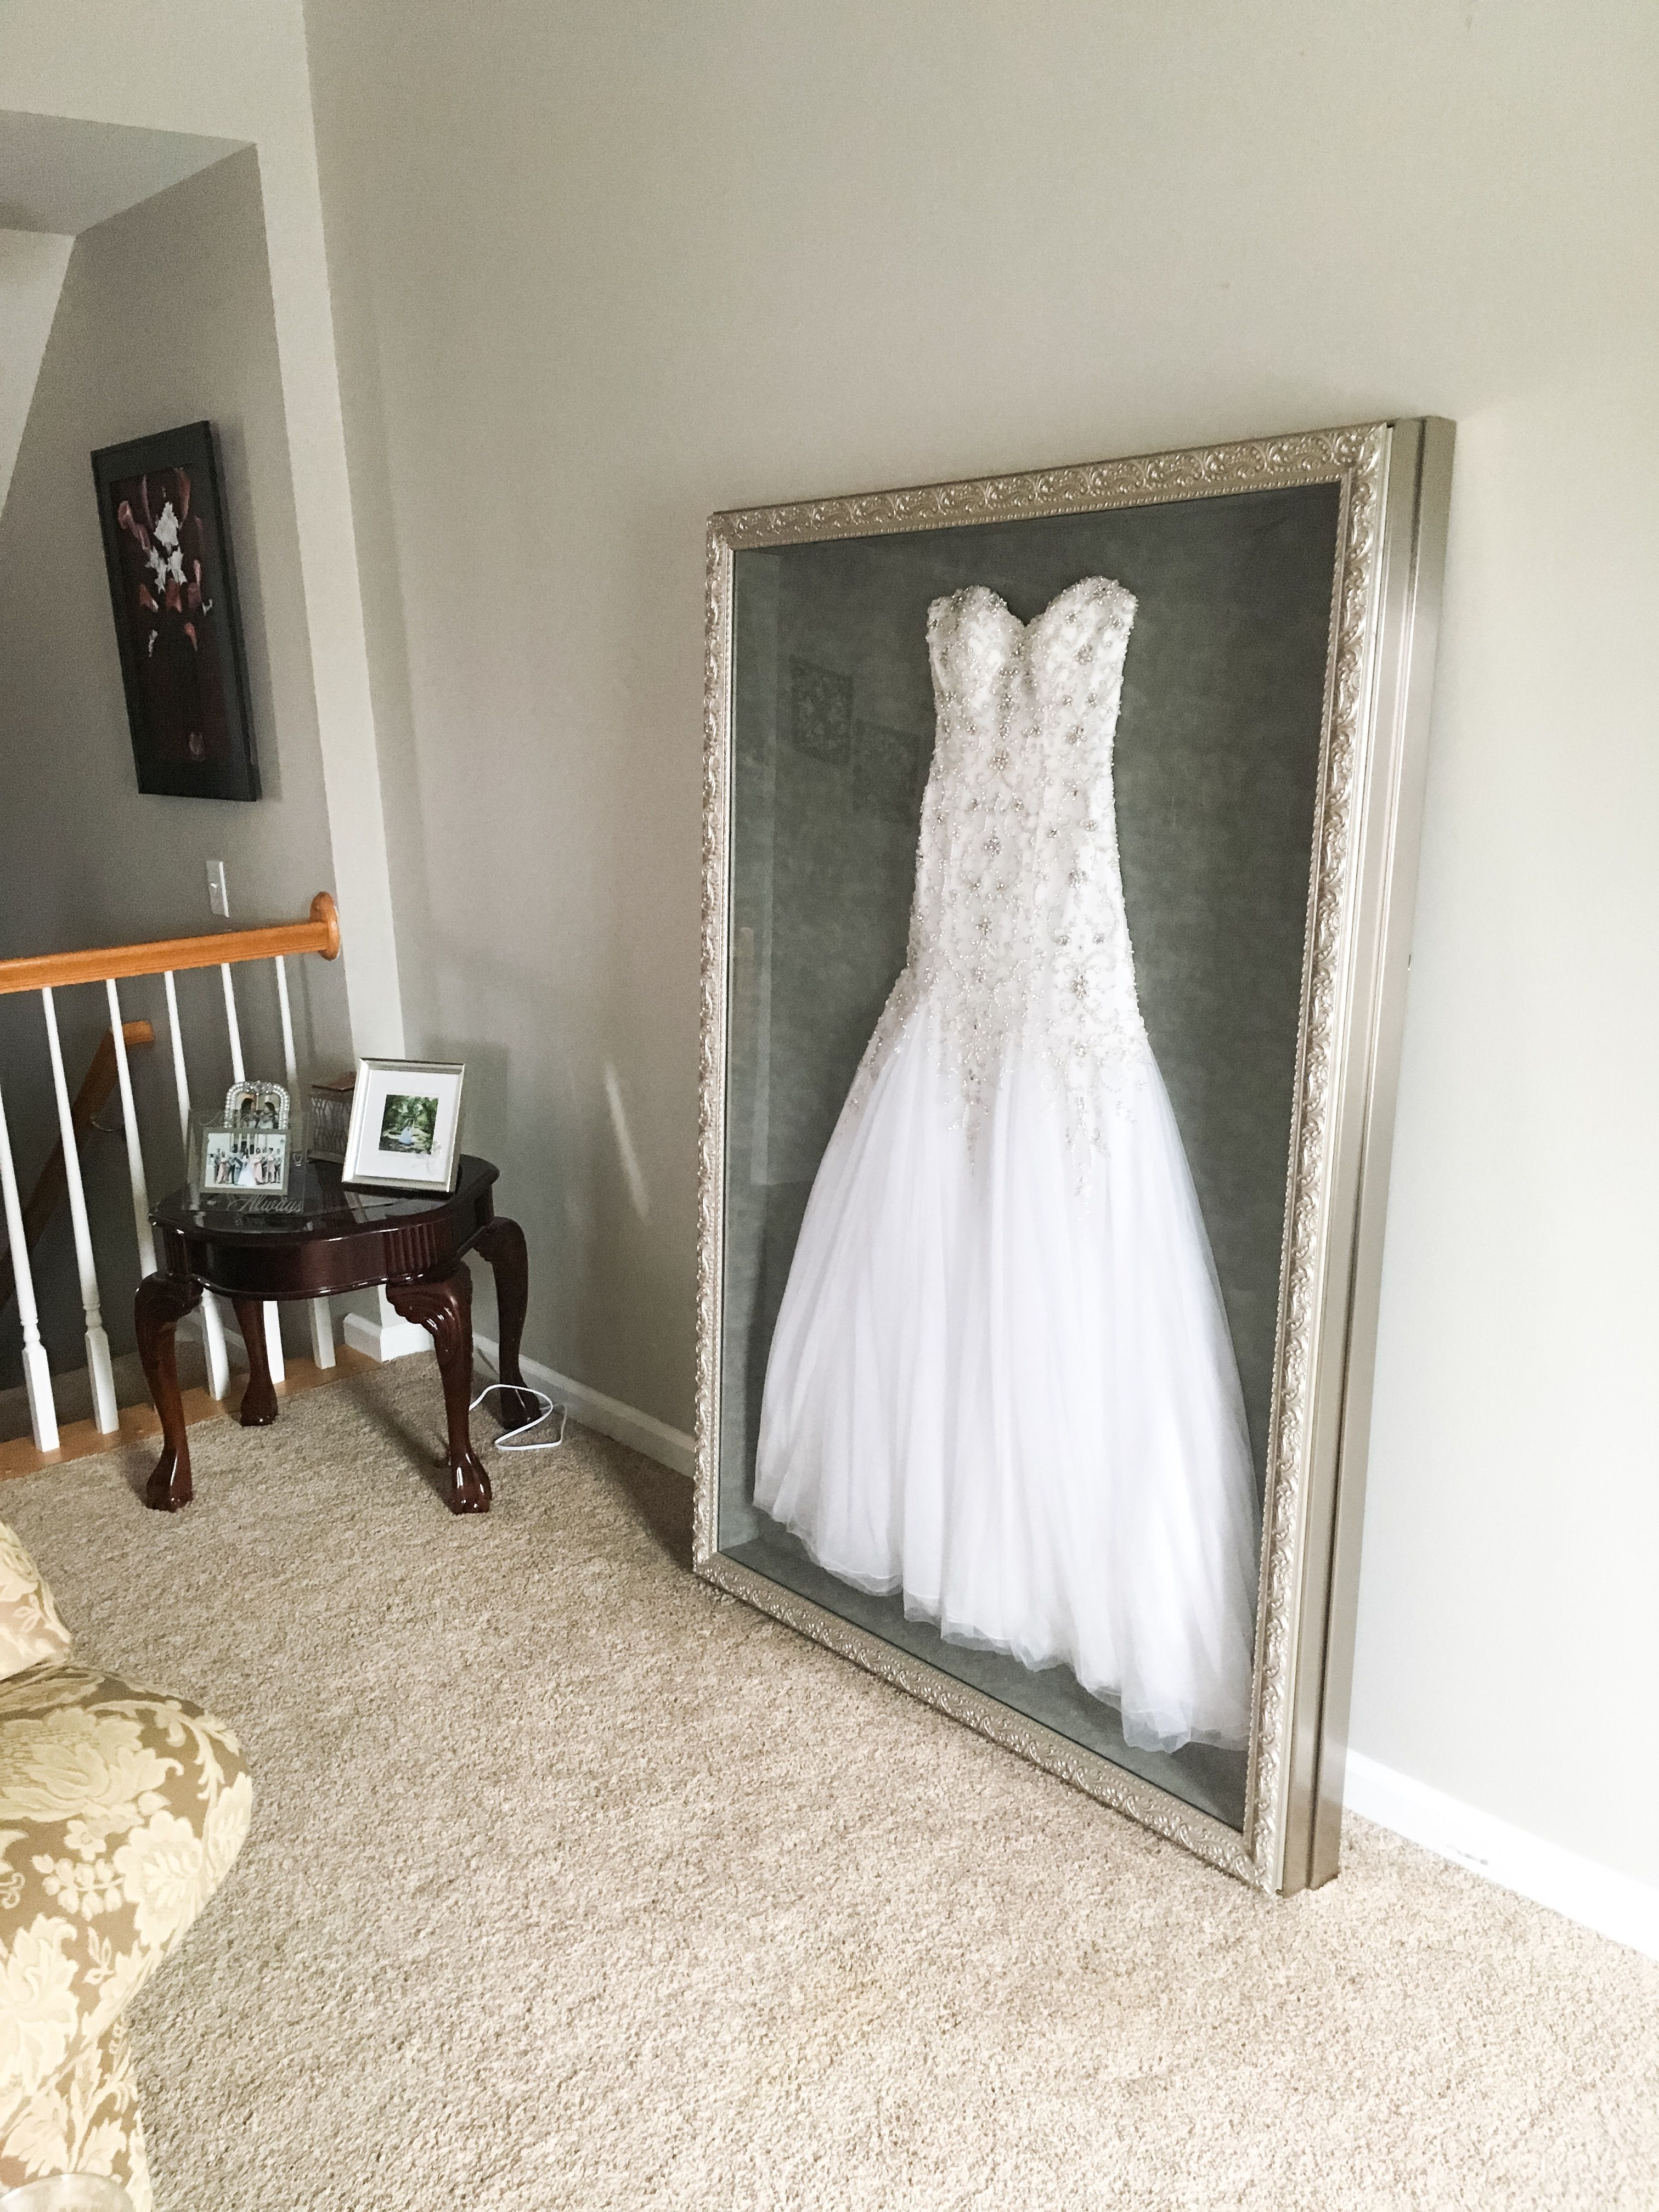 Instead of putting my wedding dress in a box hidden in the attic or